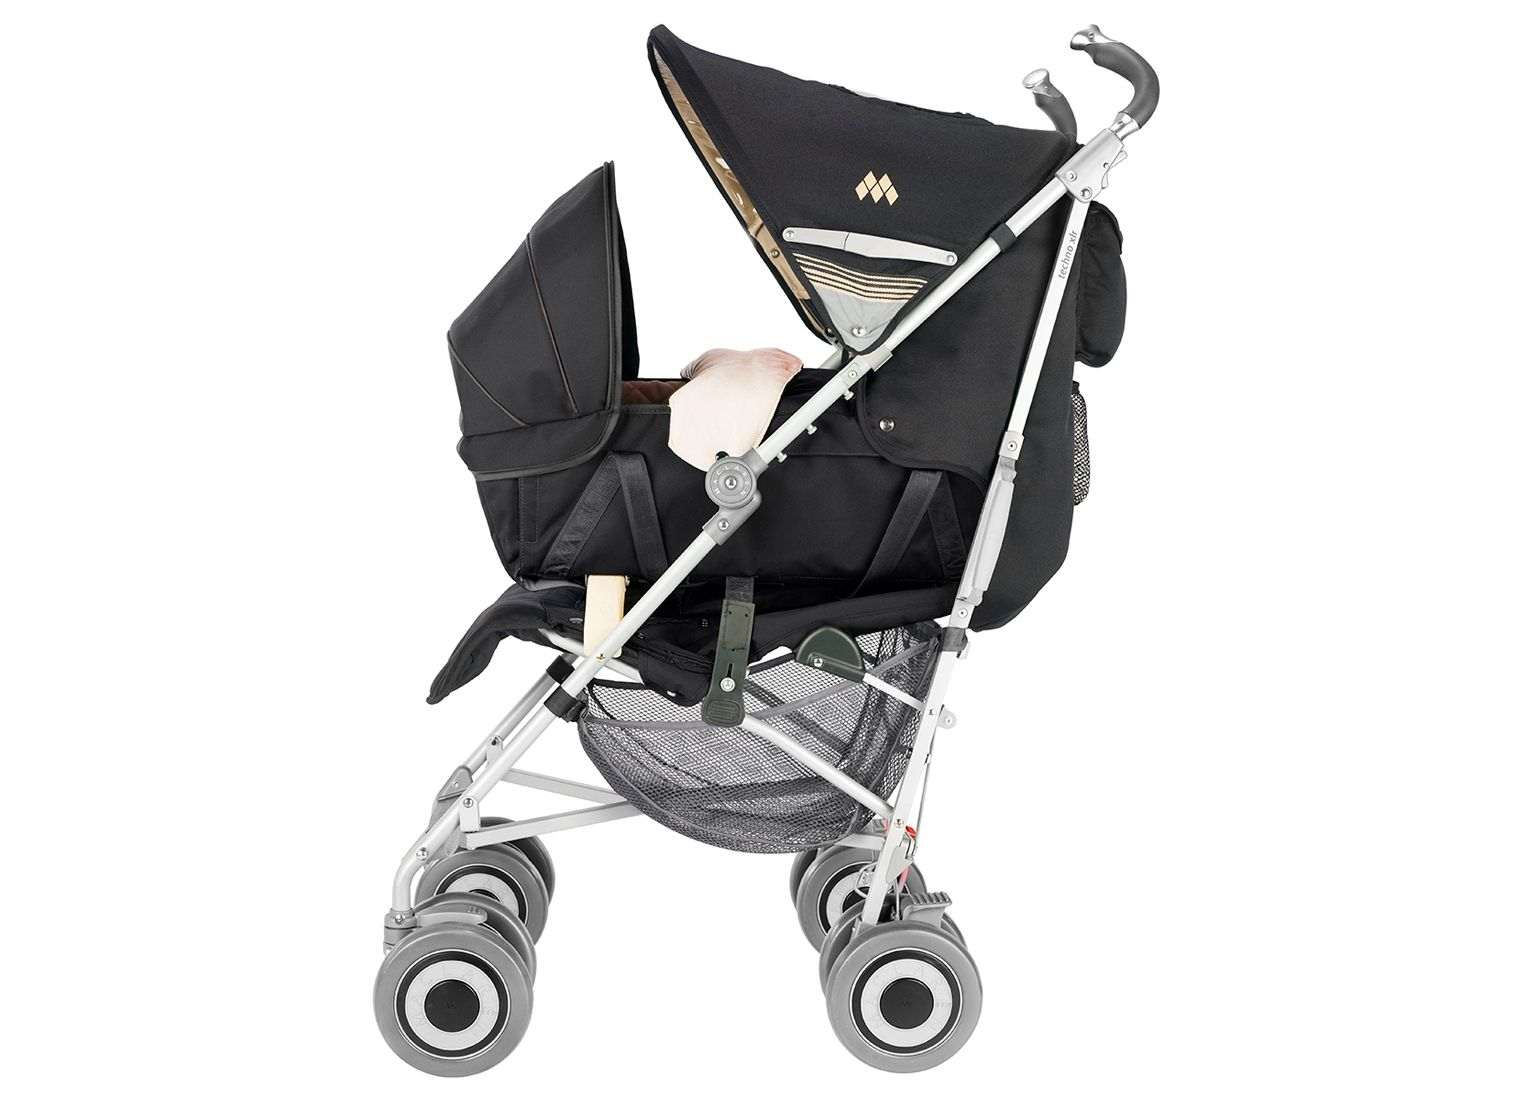 maclaren techno xlr svart champagne bonti maclaren strollers pinterest. Black Bedroom Furniture Sets. Home Design Ideas